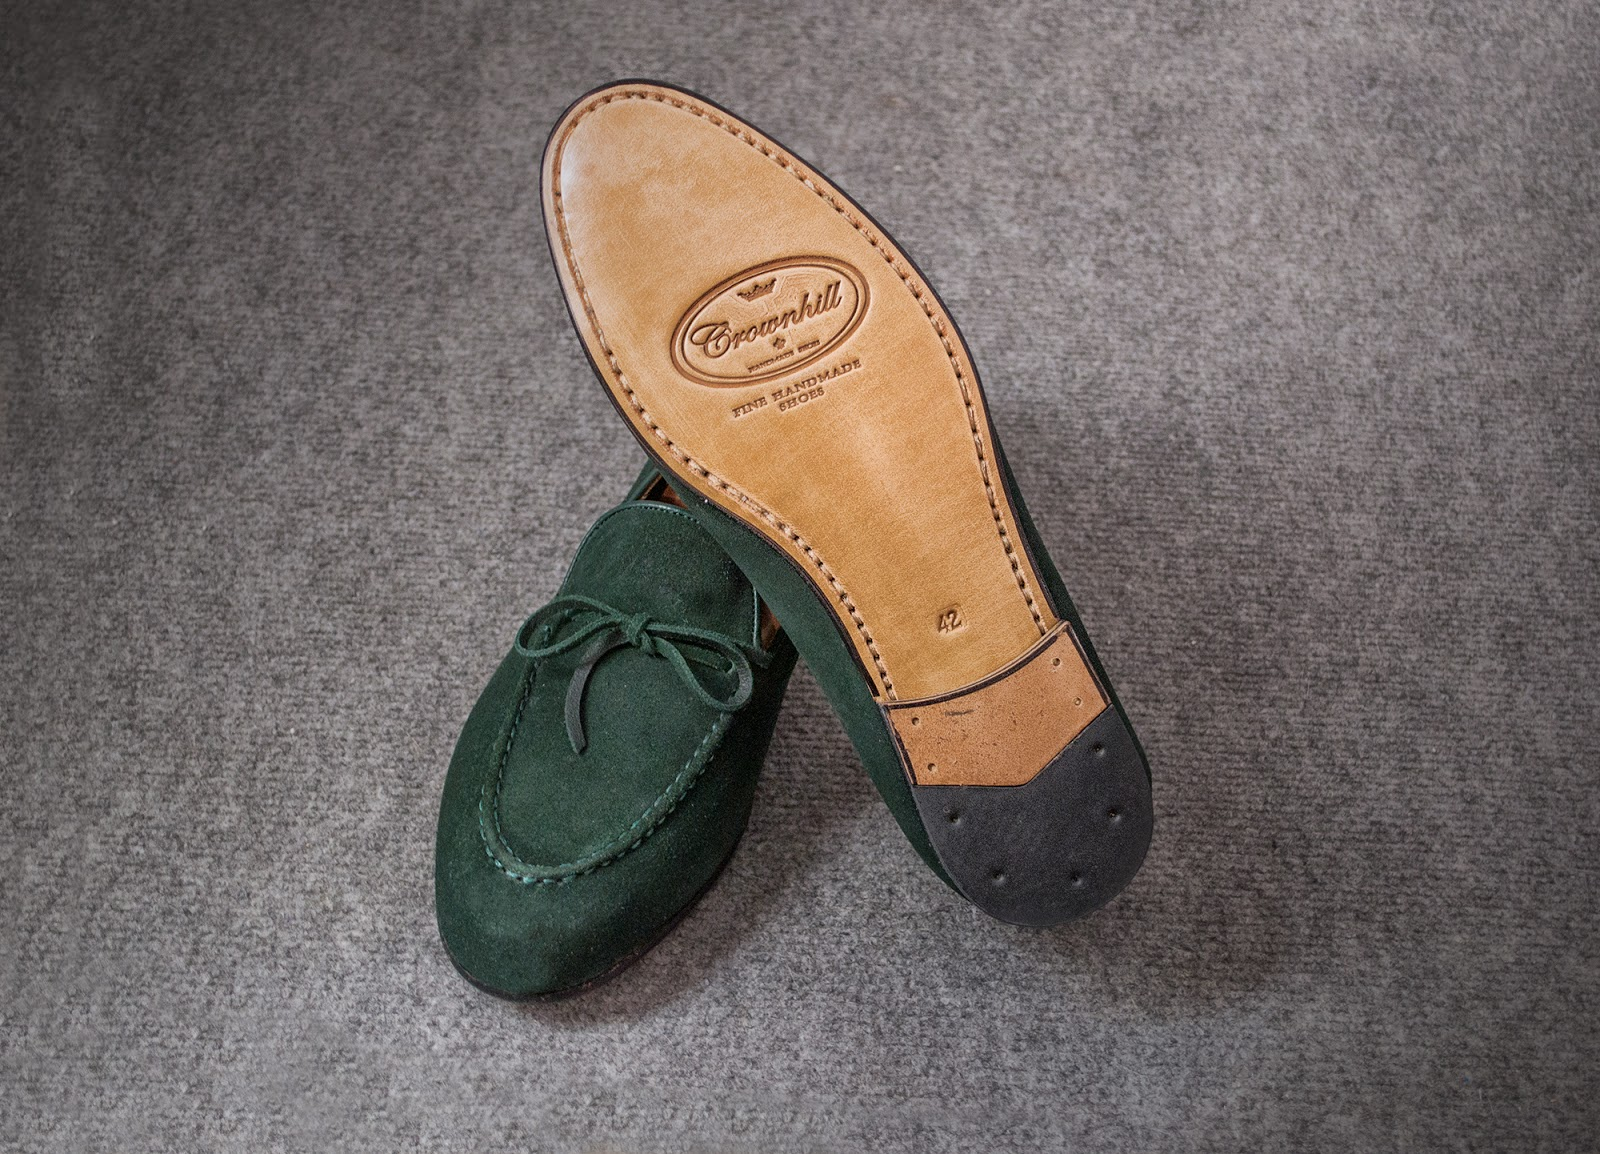 Mocasines Review Crownhill Verona Lazo De The bEH2IeD9YW